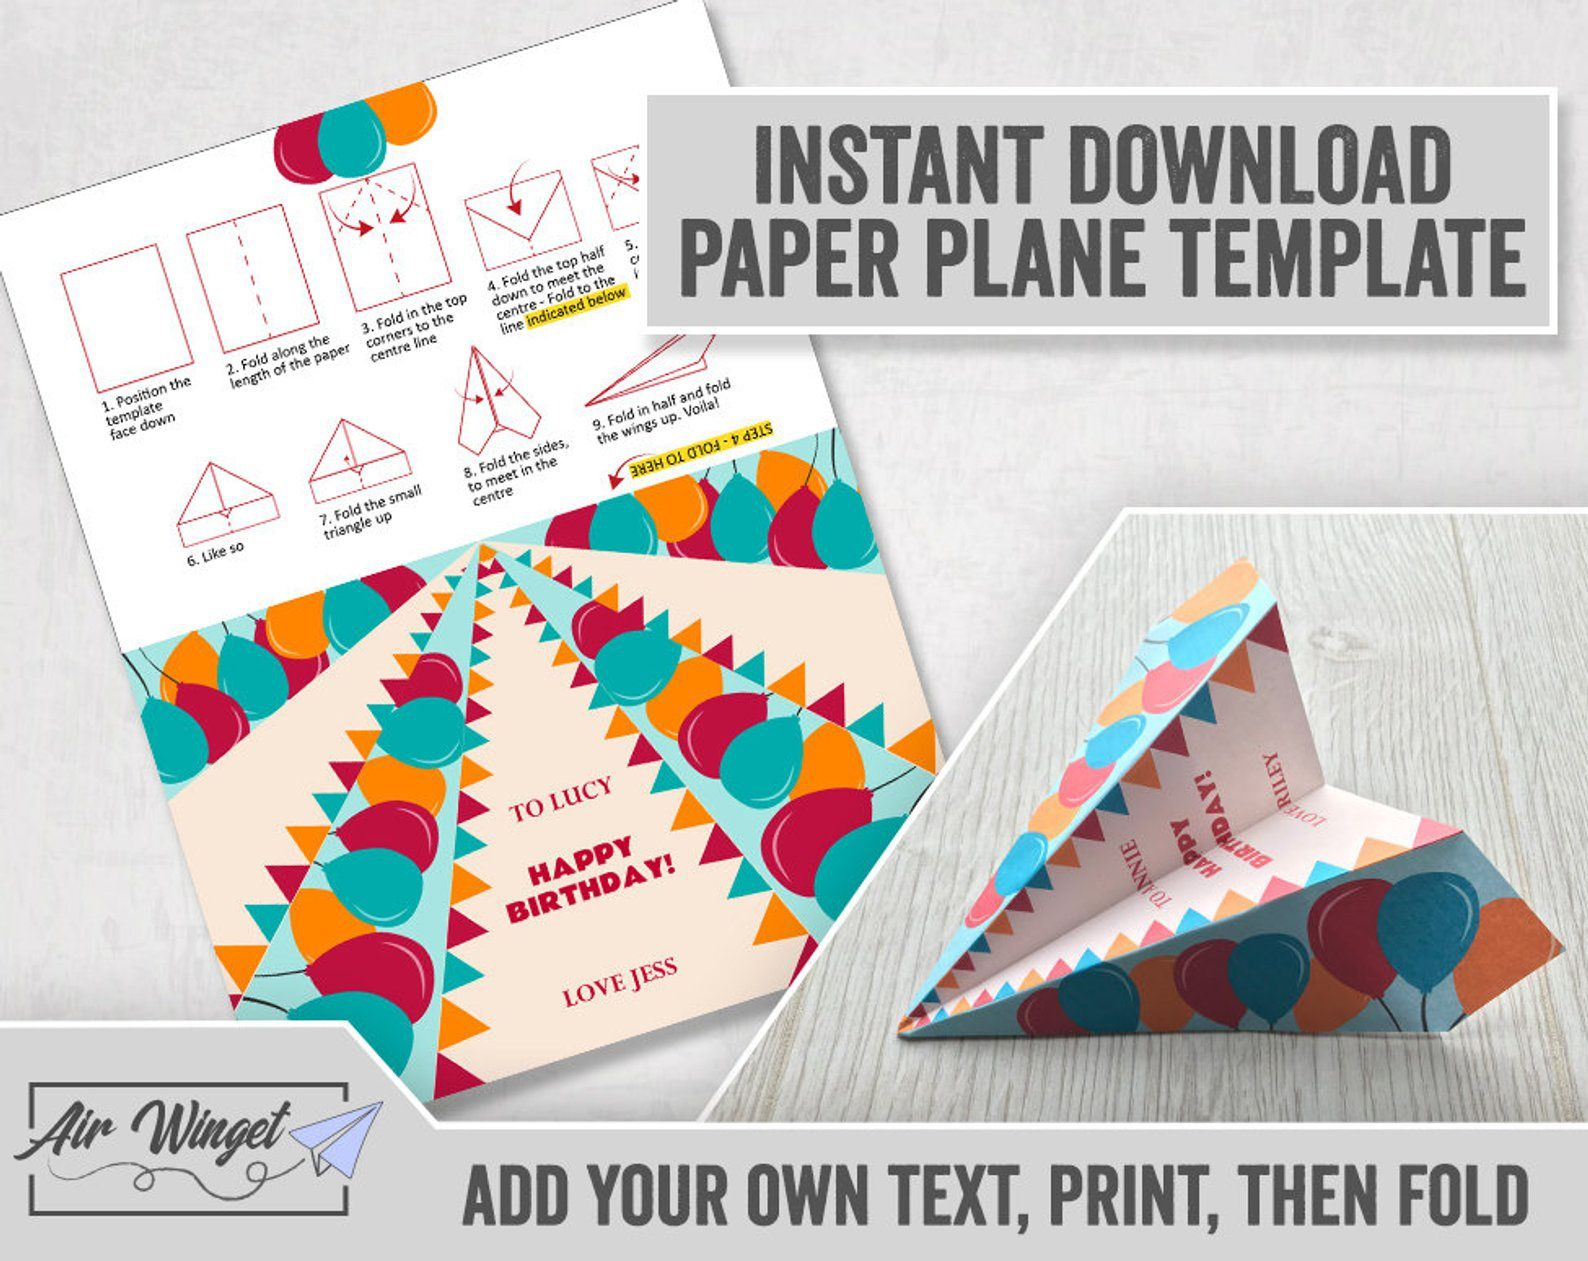 005 Unforgettable Printable Paper Plane Template Design  Free A4Full